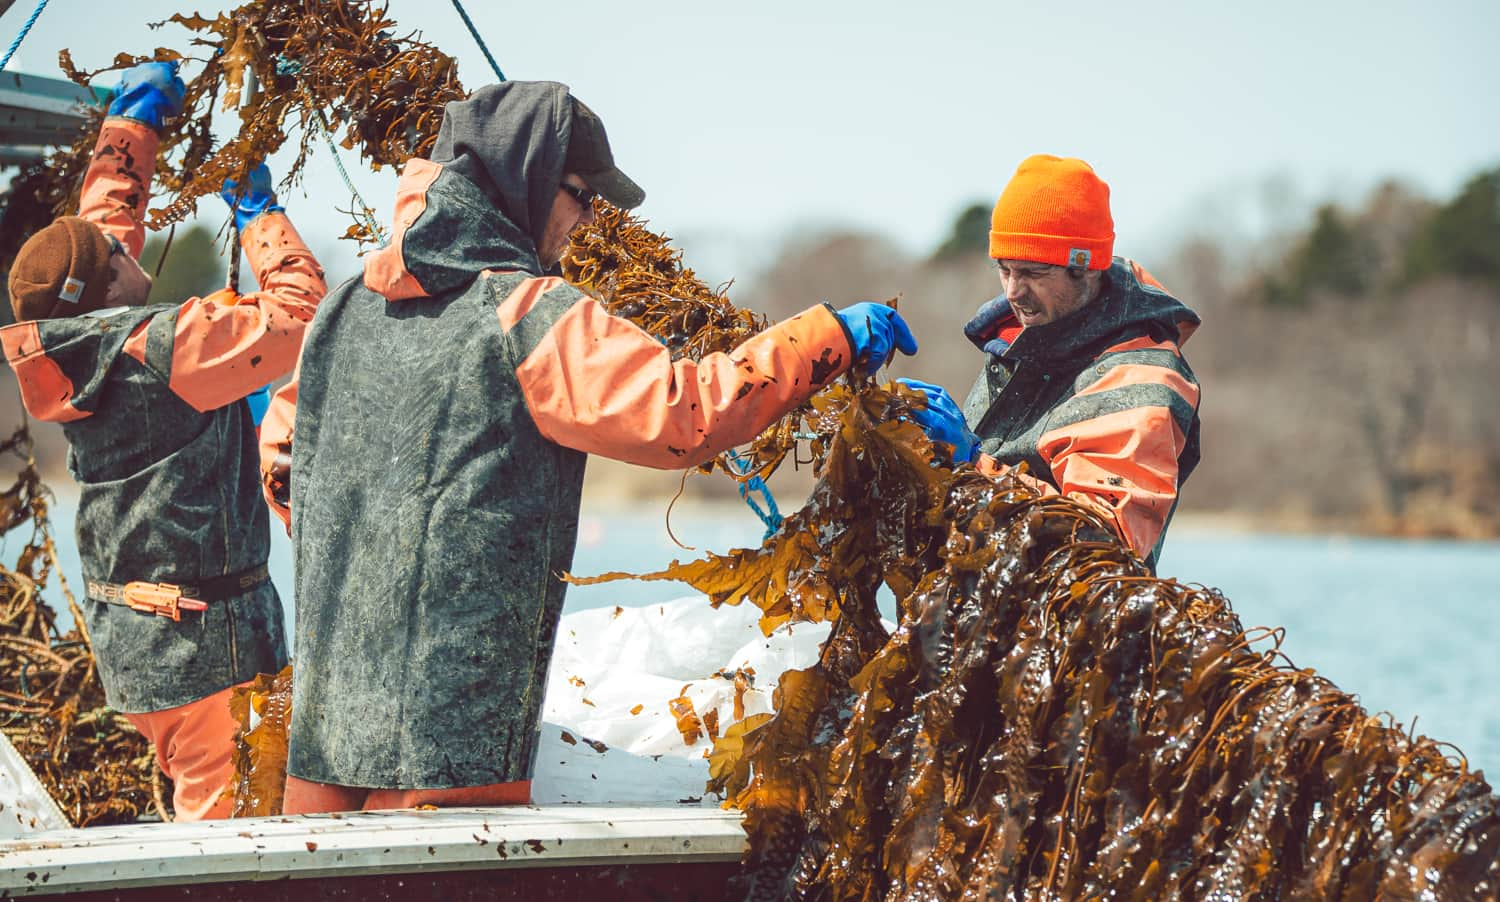 Lobsterers are finding sustainable diverse ways to increase resilience in the face of climate change.